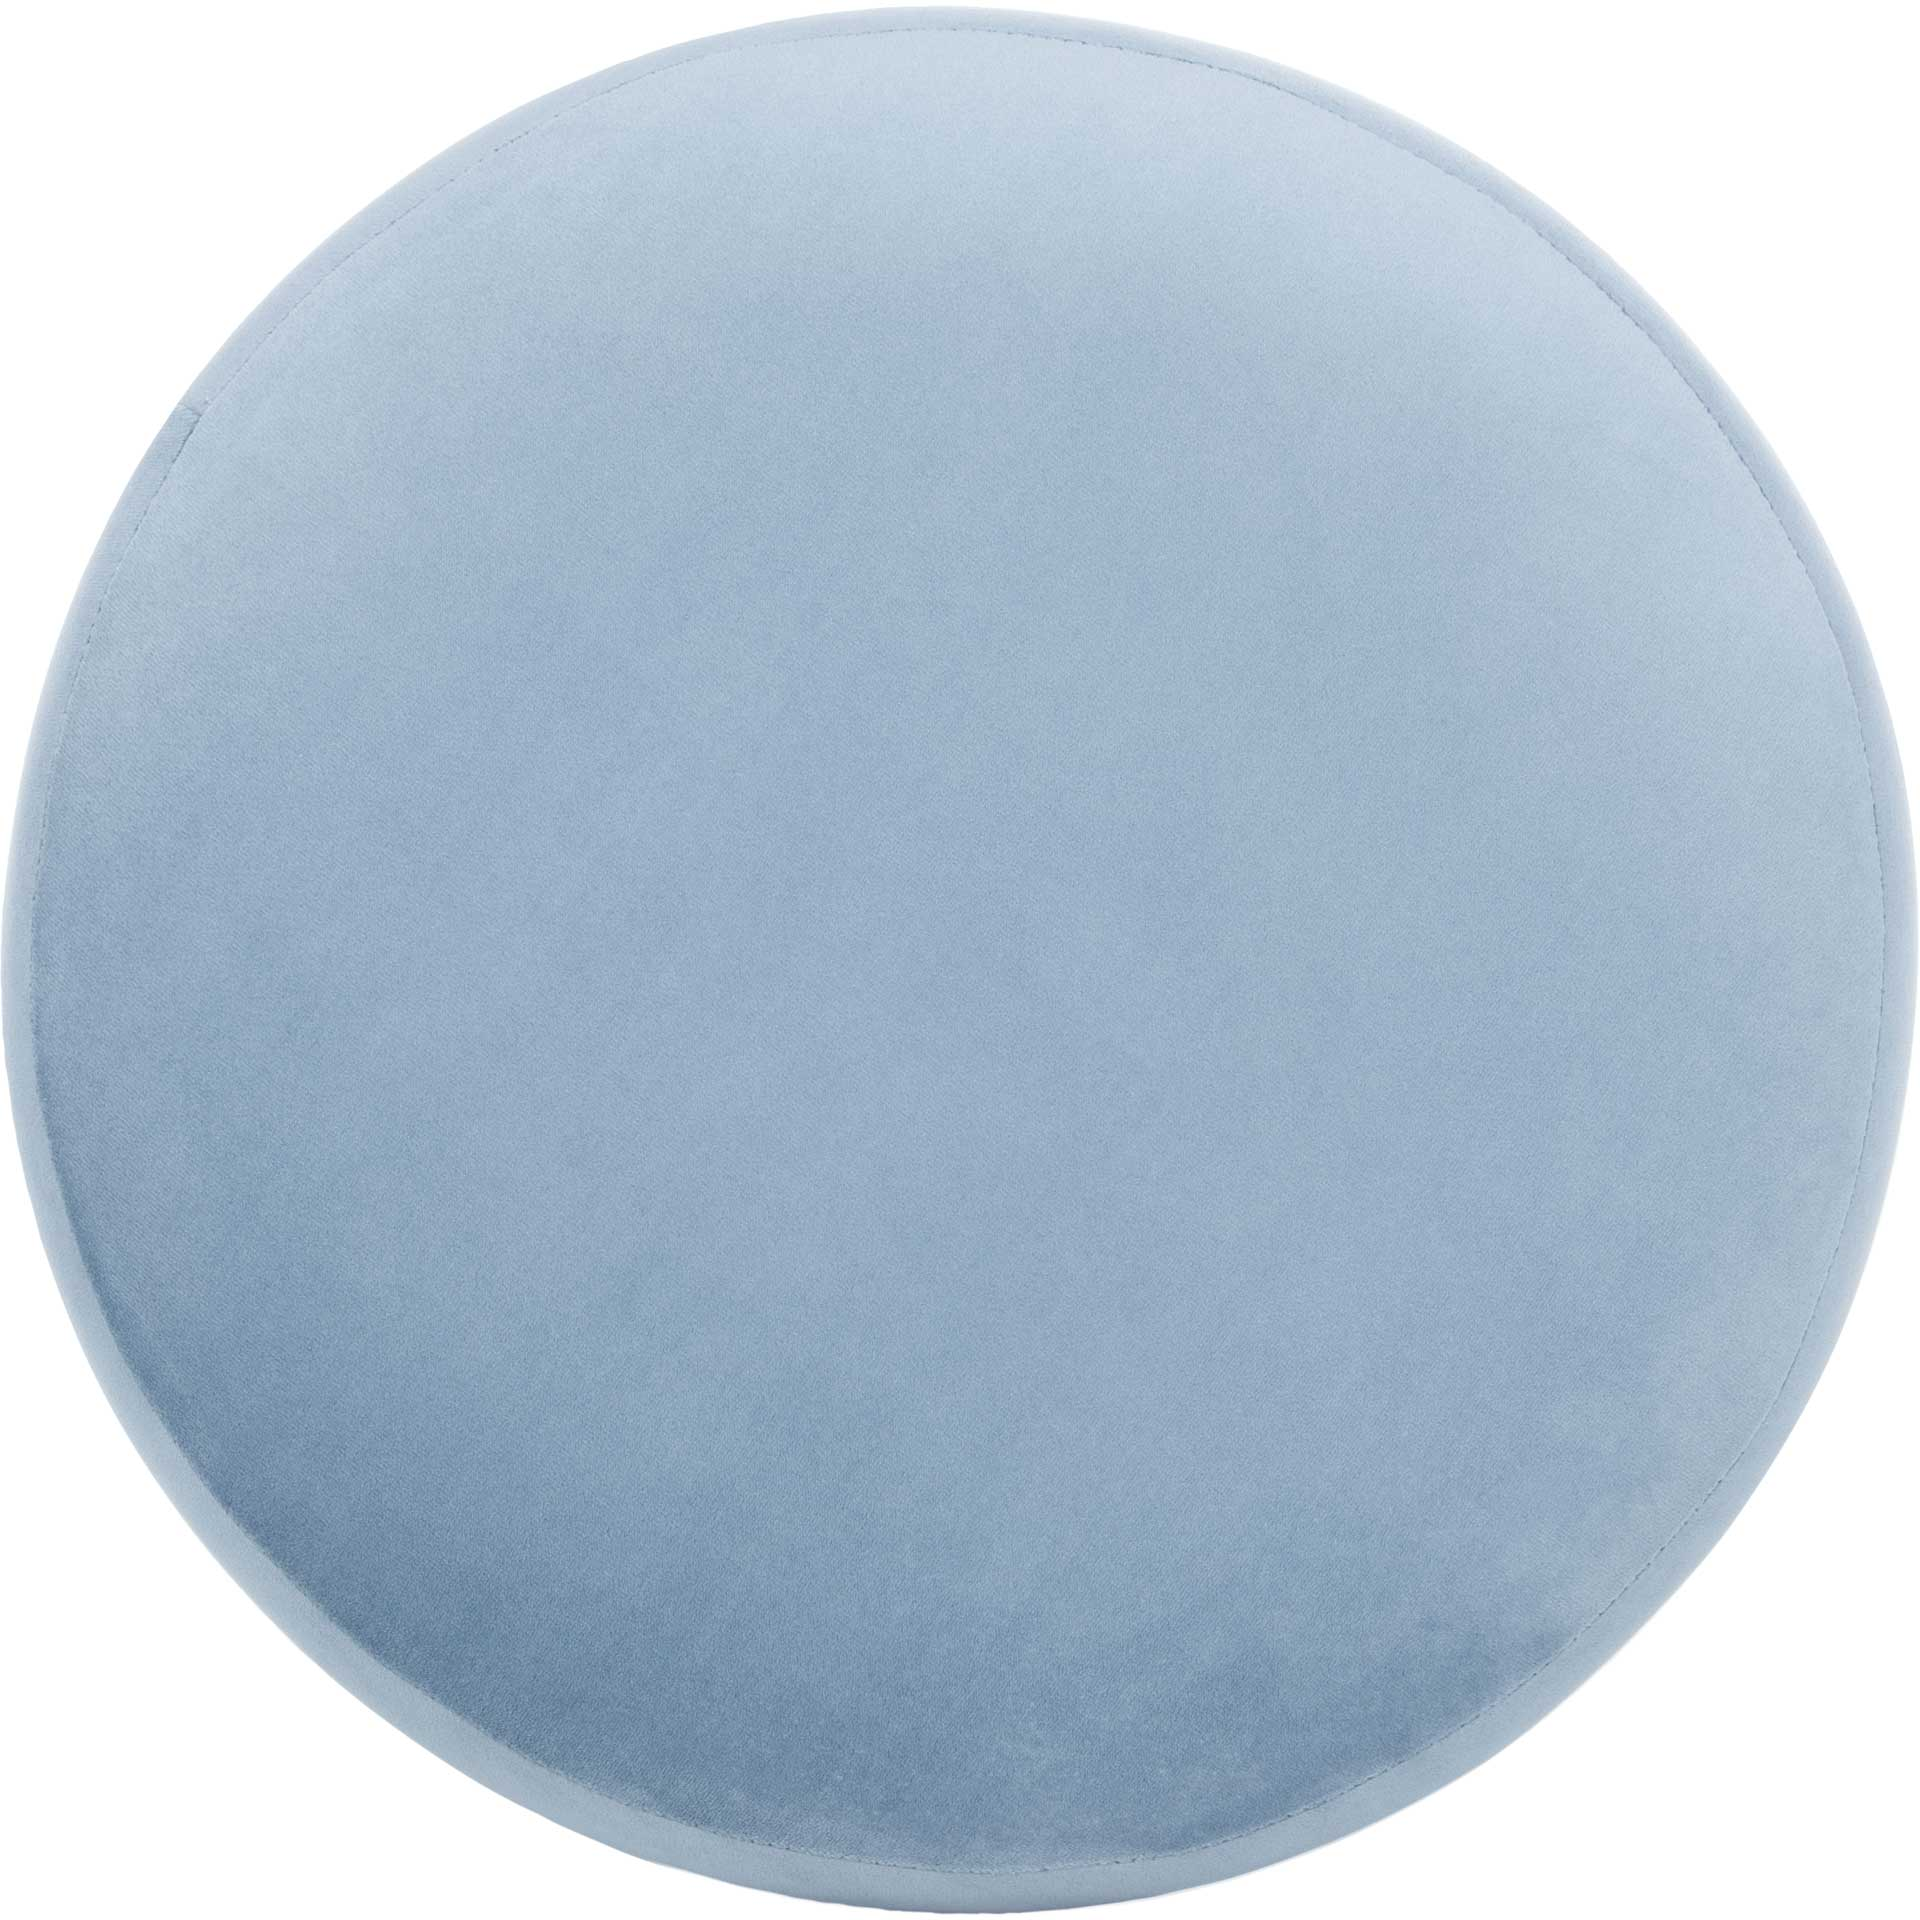 Skeat Gold Base Ottoman Light Blue